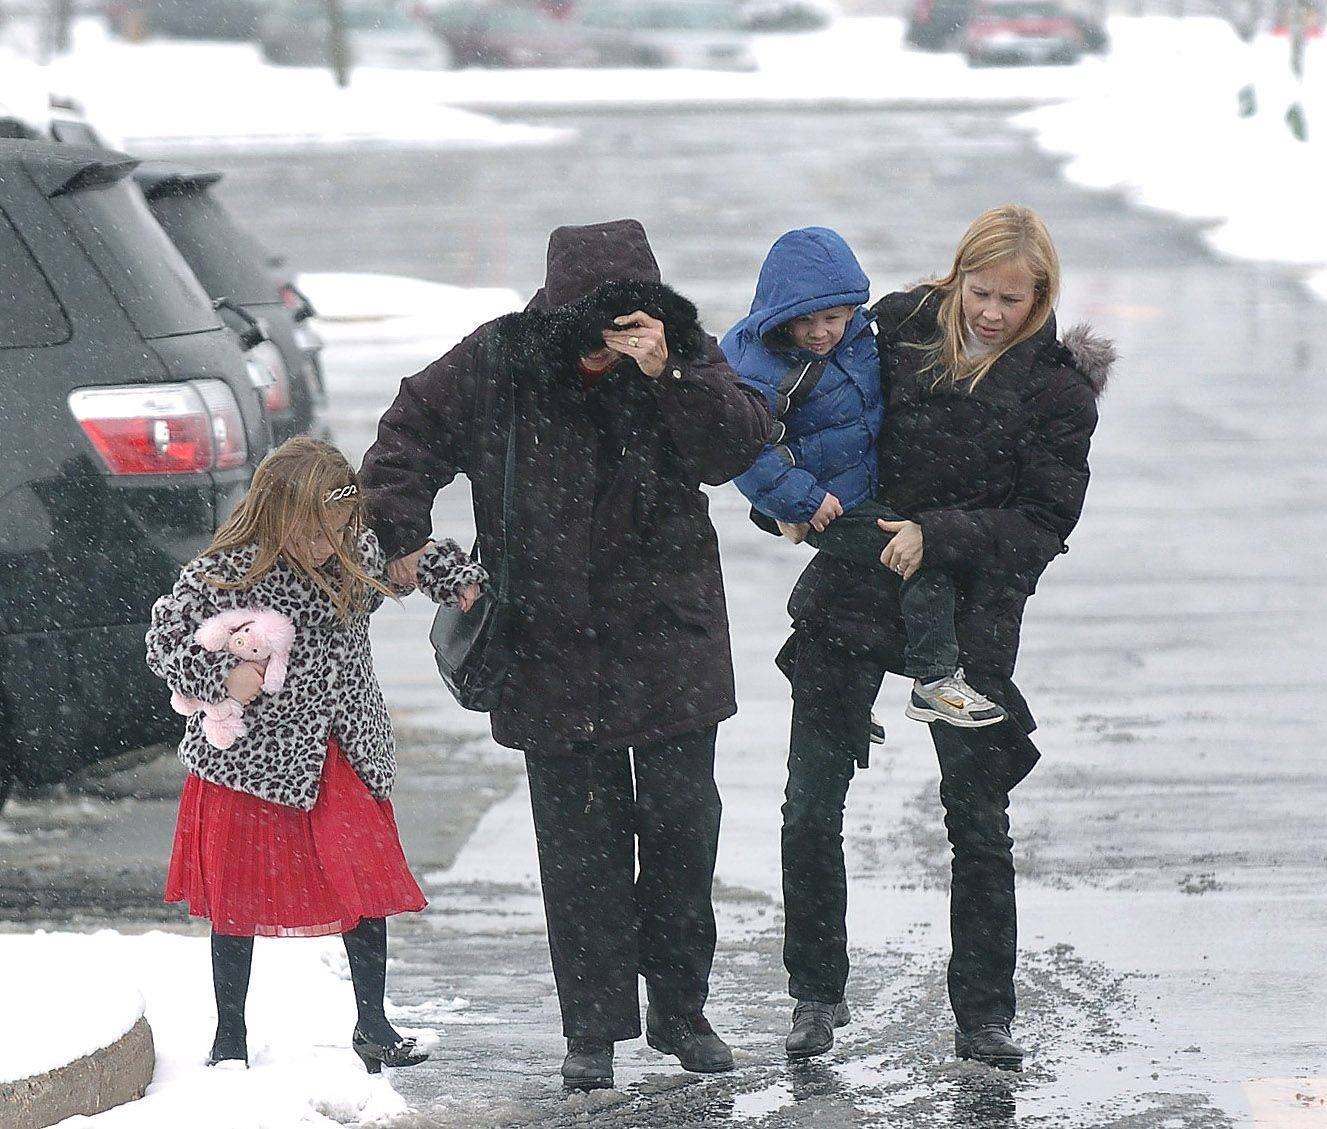 From left, Ashley Harrington, her grandma Pat Marshall, Danny Harrington and mom Jen Harrington make their way through the snowy parking lot on their way to Panera Bread for lunch in Vernon Hills Saturday.